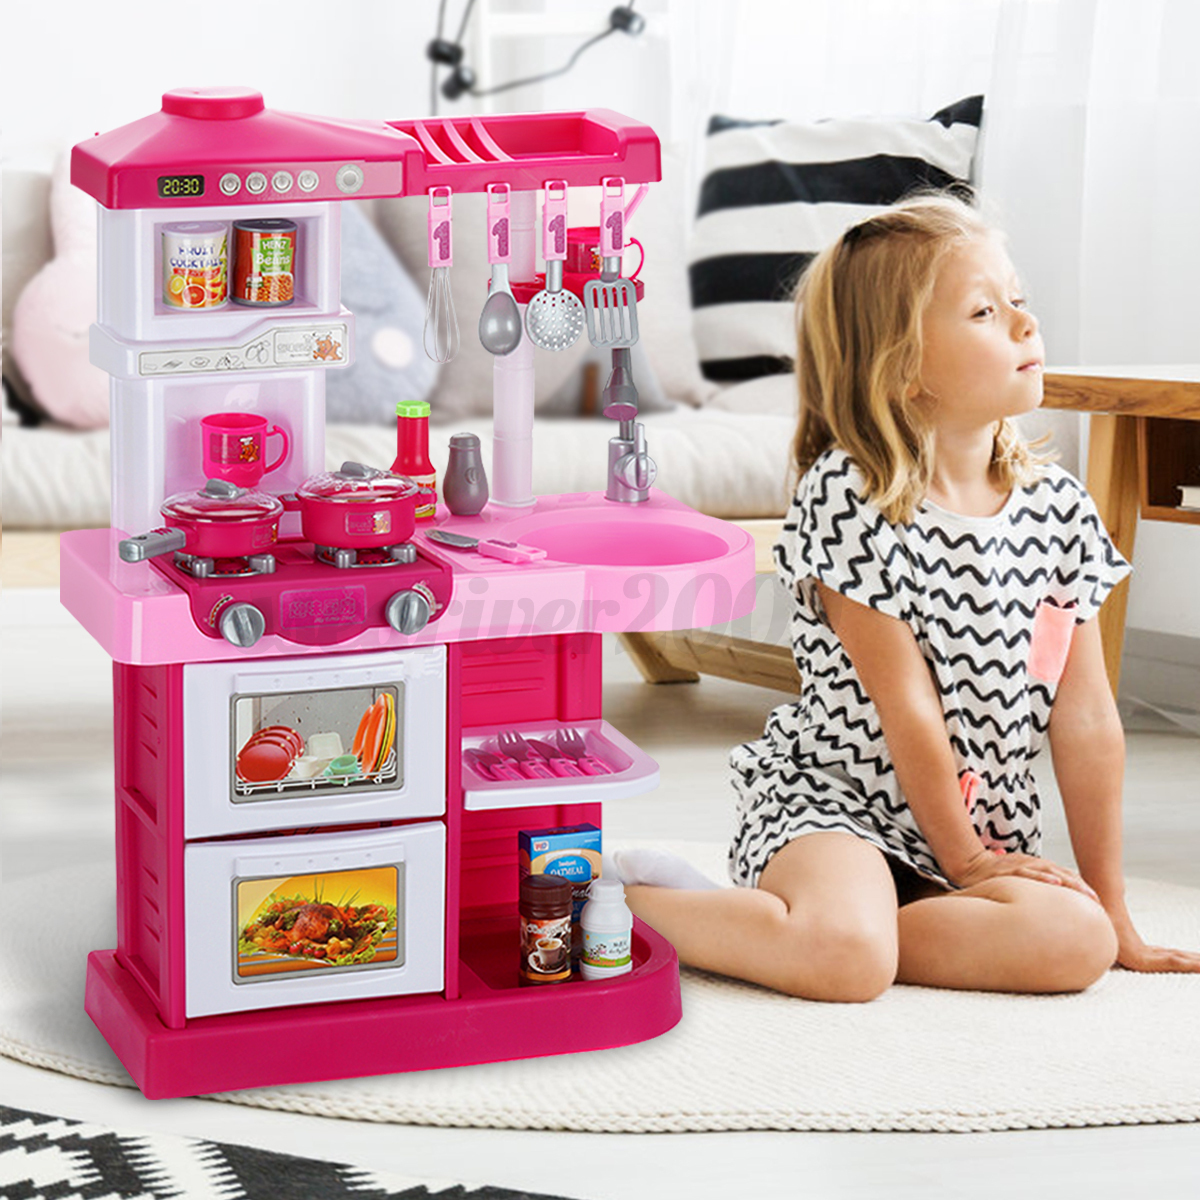 Pretend Kitchen Cookware Play Set Toy kids Cooking Food Girl Pink w Music Light